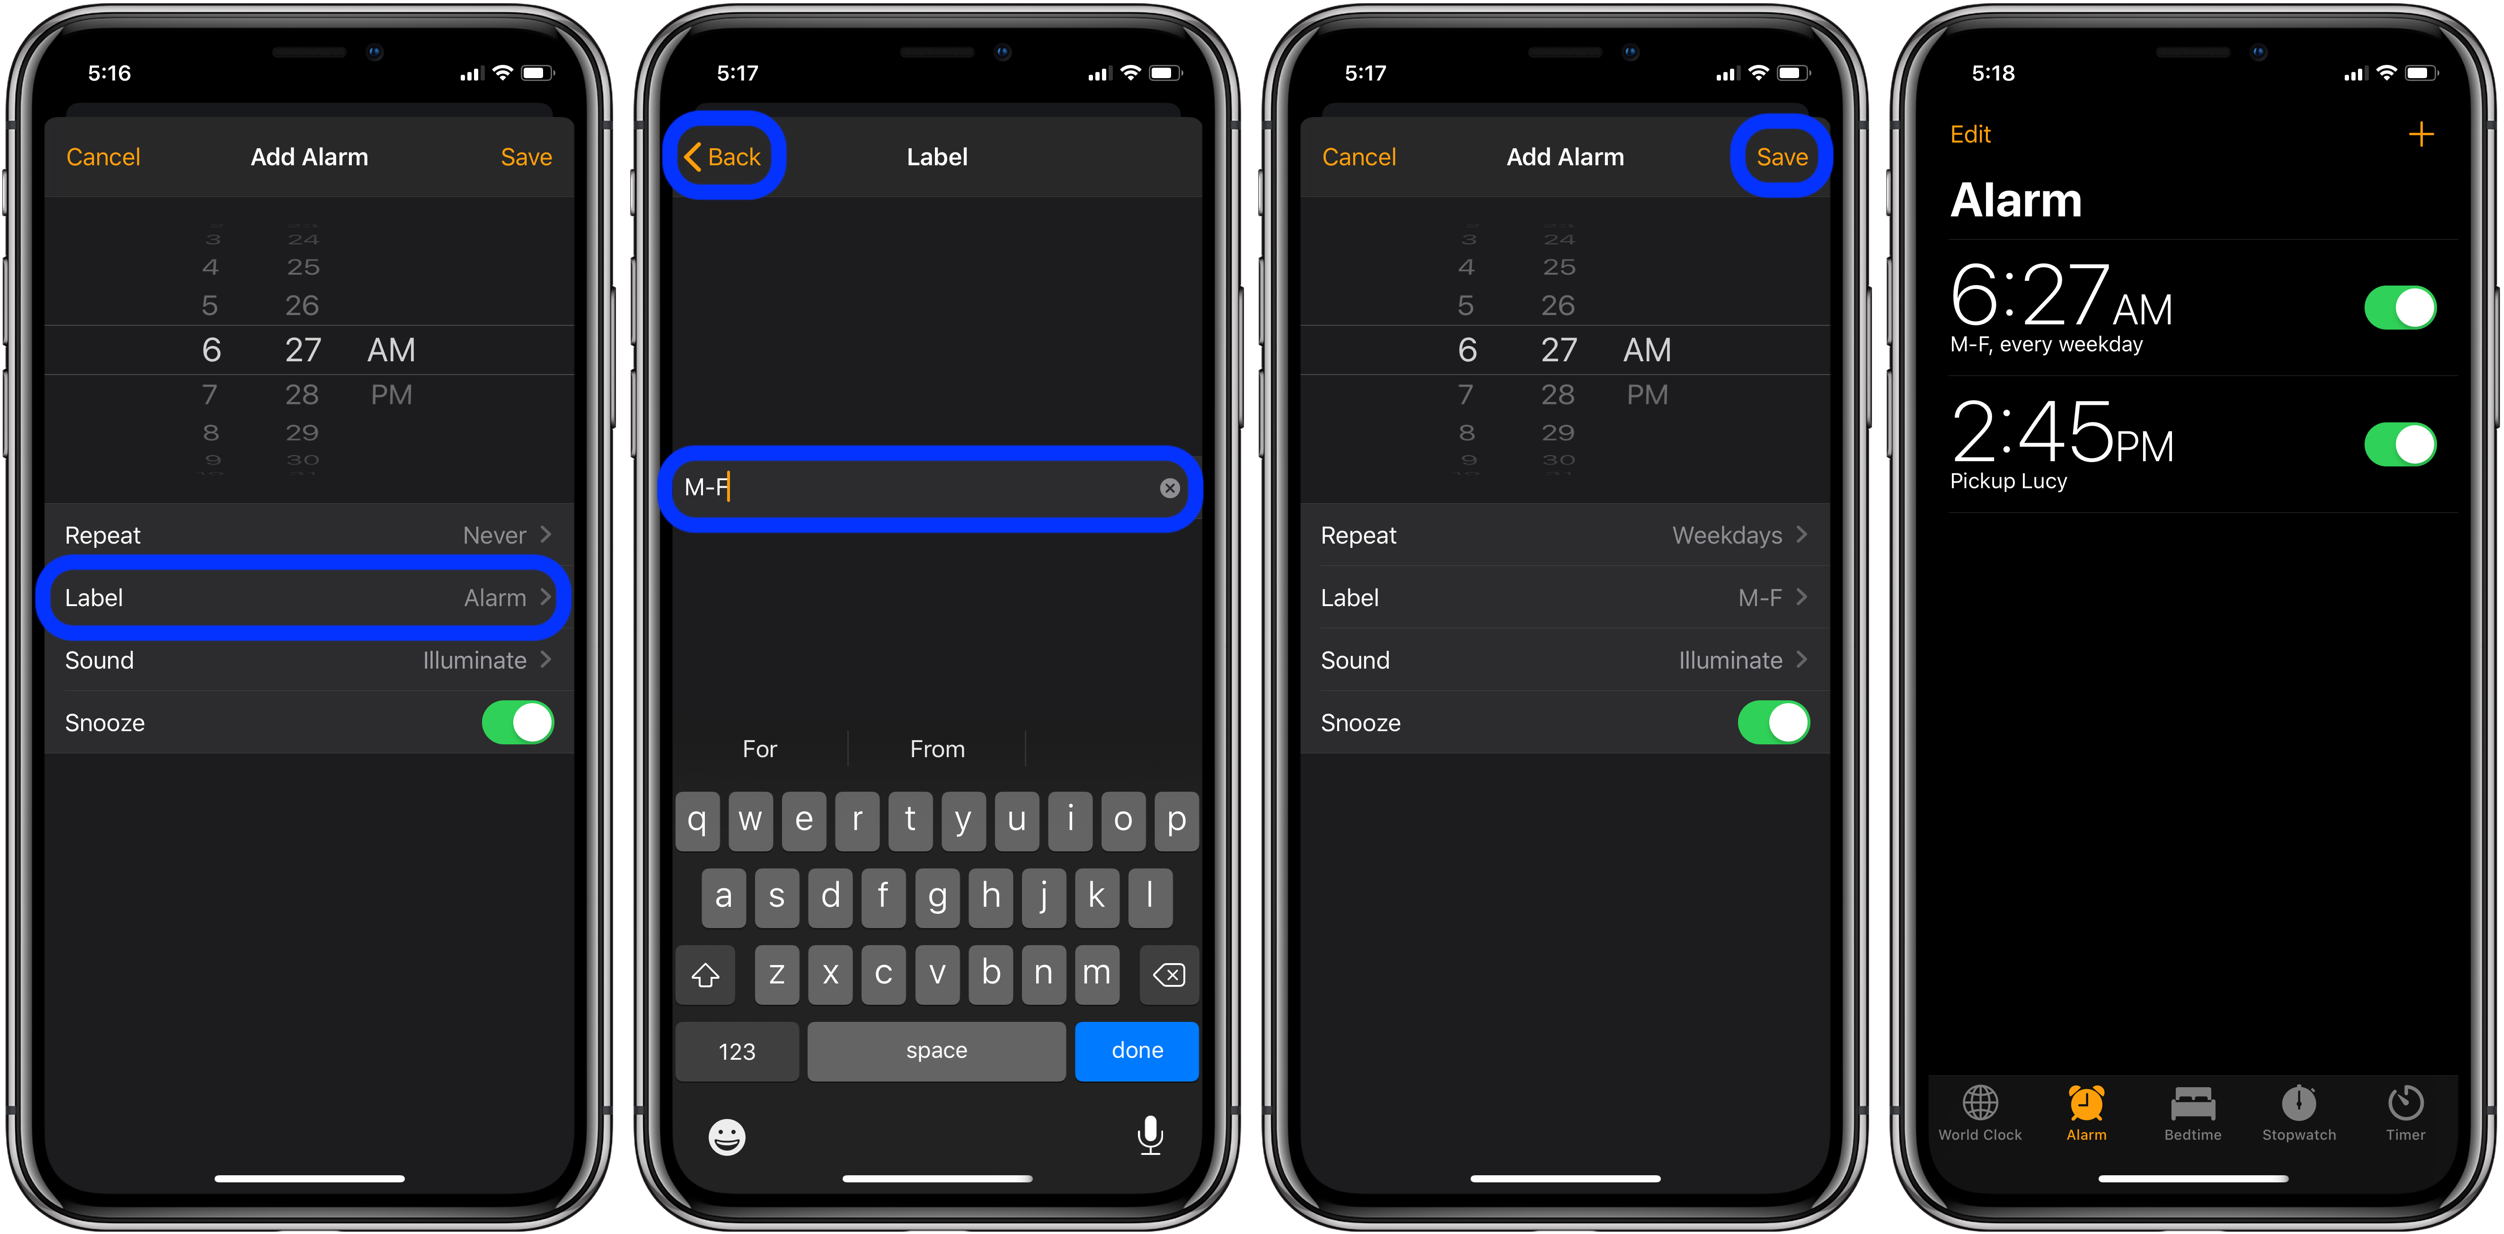 How to create repeating scheduled alarms on iPhone walkthrough